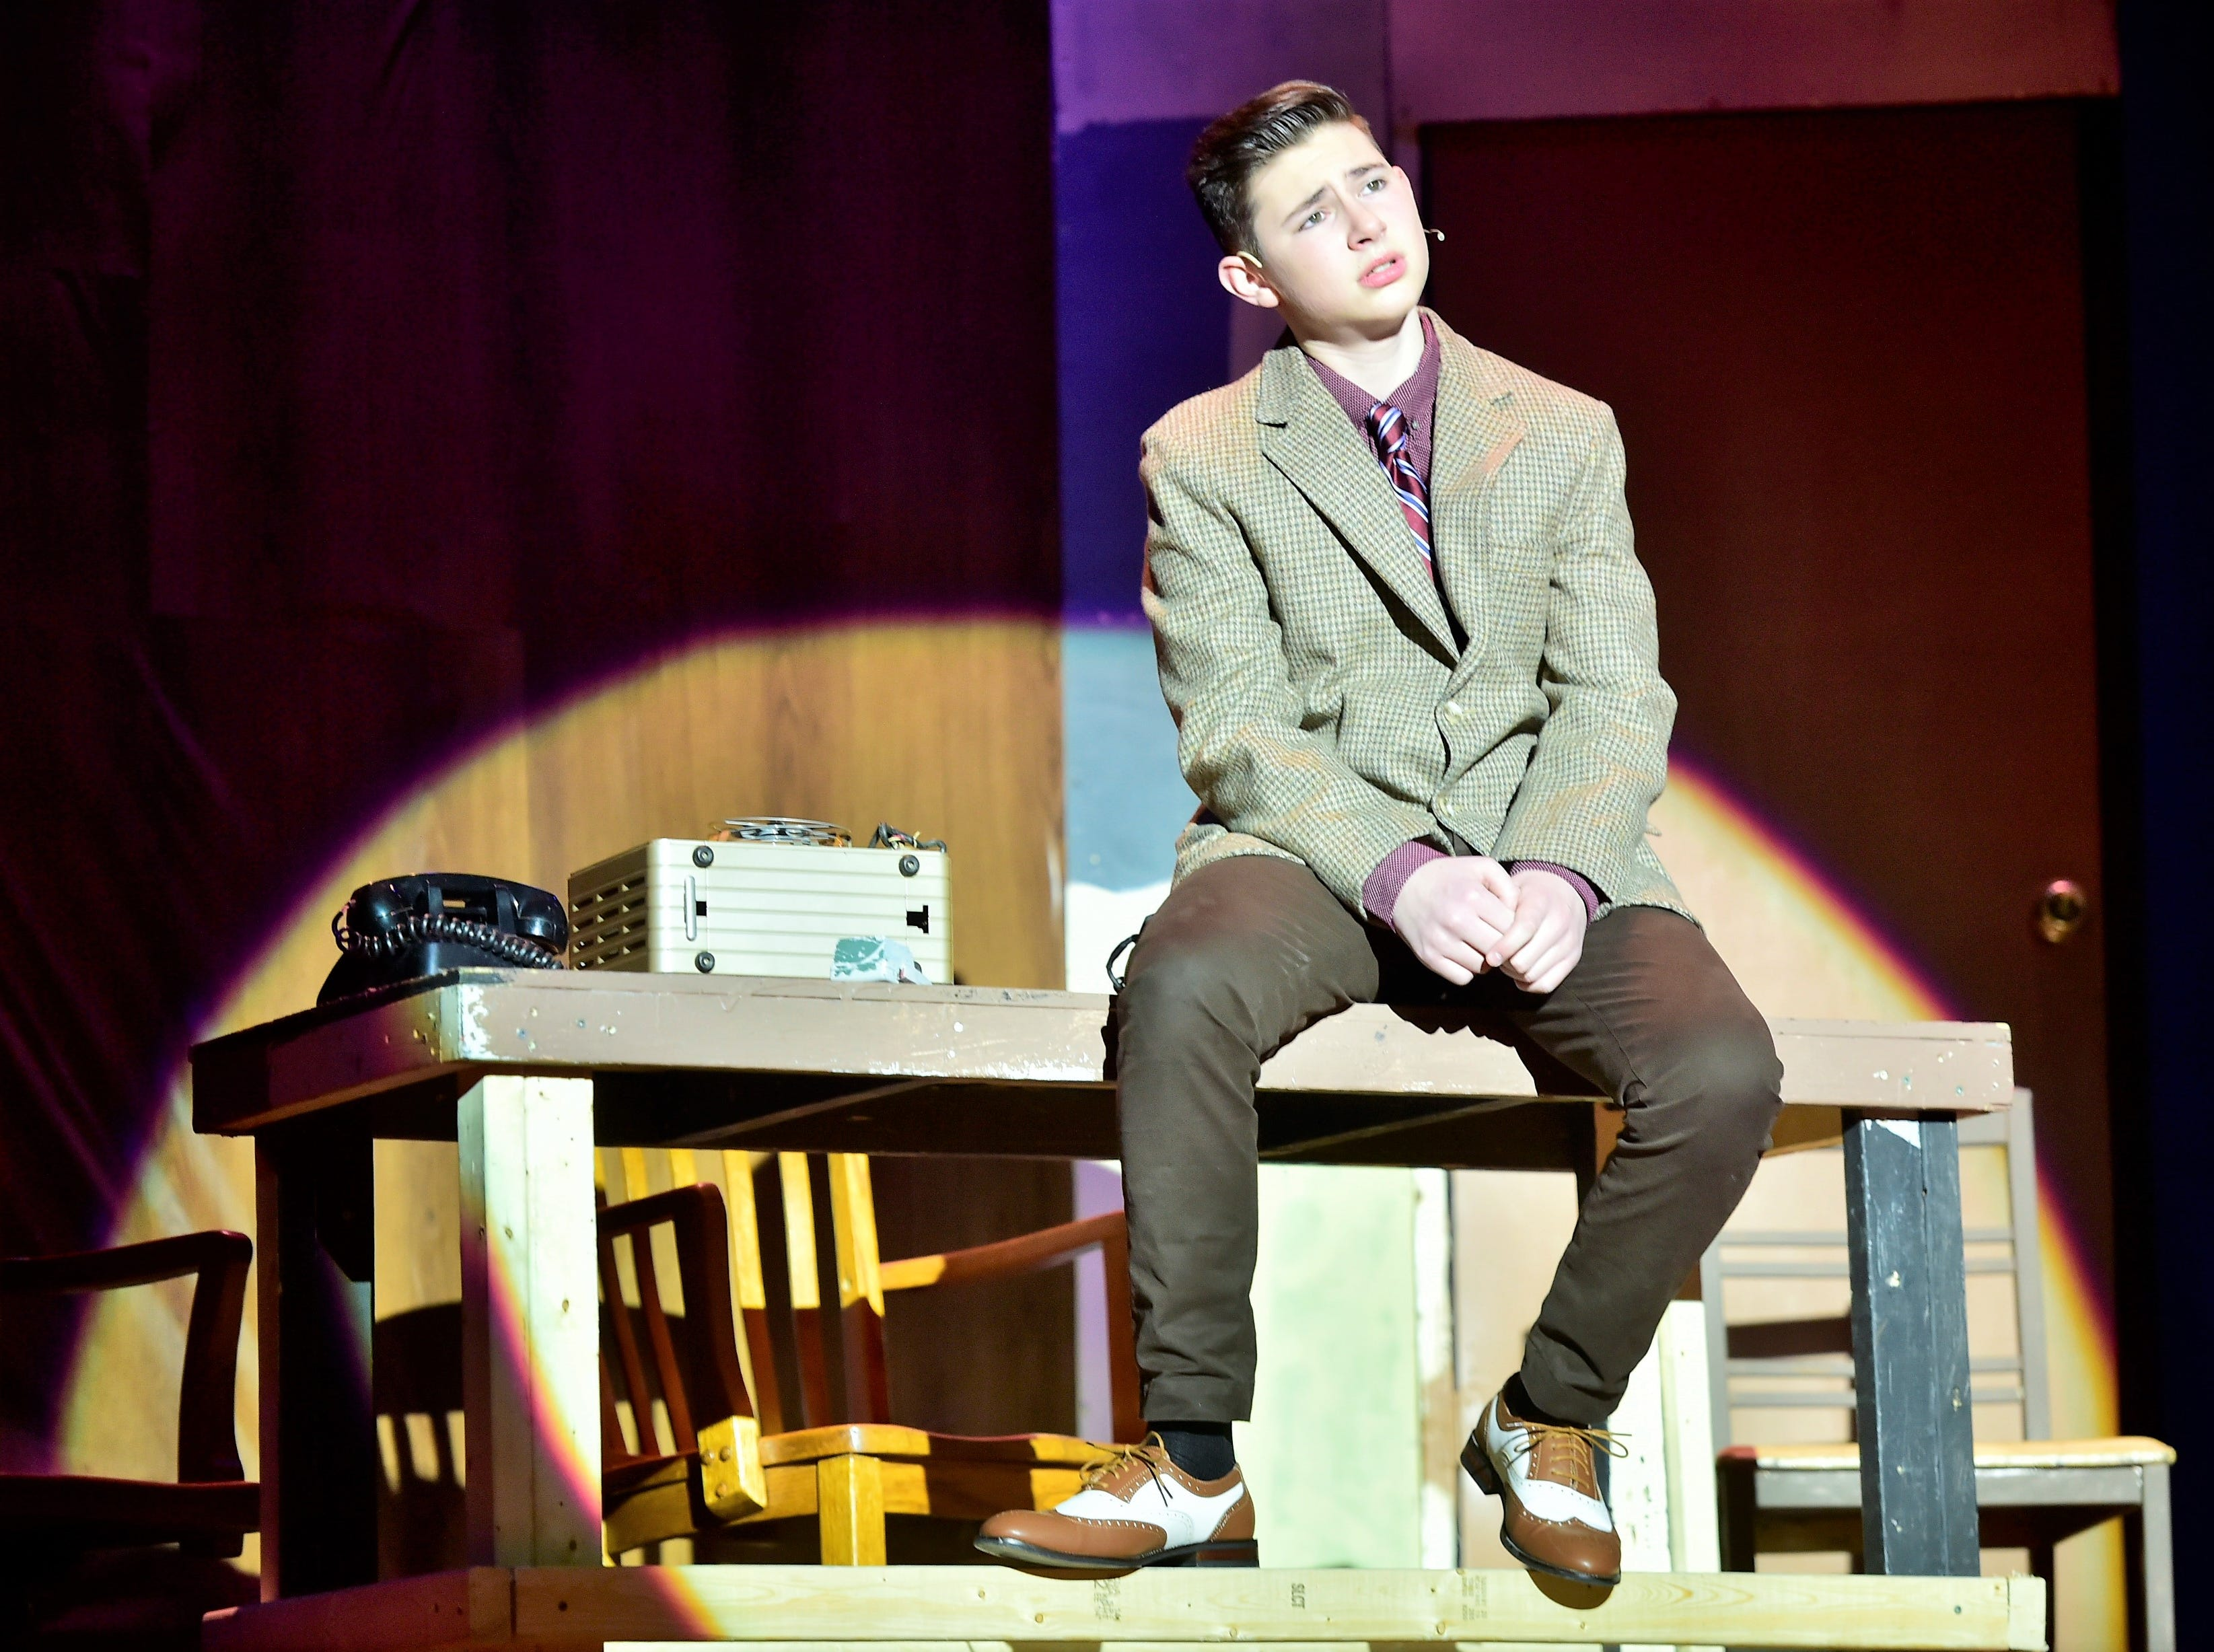 """Jude Musolino, as Sid Sorokin, rehearses a solo musical number  from """"The Pajama Game,"""" on Sunday, March 10, 2019, at Waynesboro Area Senior High School. The musical, based on the 1953 novel, """"7 1/2 Cents"""" by Richard Bissell, tells the story of a pajama factory where workers are fighting for a raise of 7 1/2 cents. Showtimes for Waynesboro Area School District's All-School Production of """"The Pajama Game"""" are 7 p.m. Friday and Saturday, March 15 and 16, and 2 p.m. Sunday, March 17 in the high school auditorium. For choose-your-seat tickets, $10 for adults and $6 for children under 12, go to https://washsmusic.ticketleap.com/the-pajama-game/. General admission tickets will also be sold at the door."""